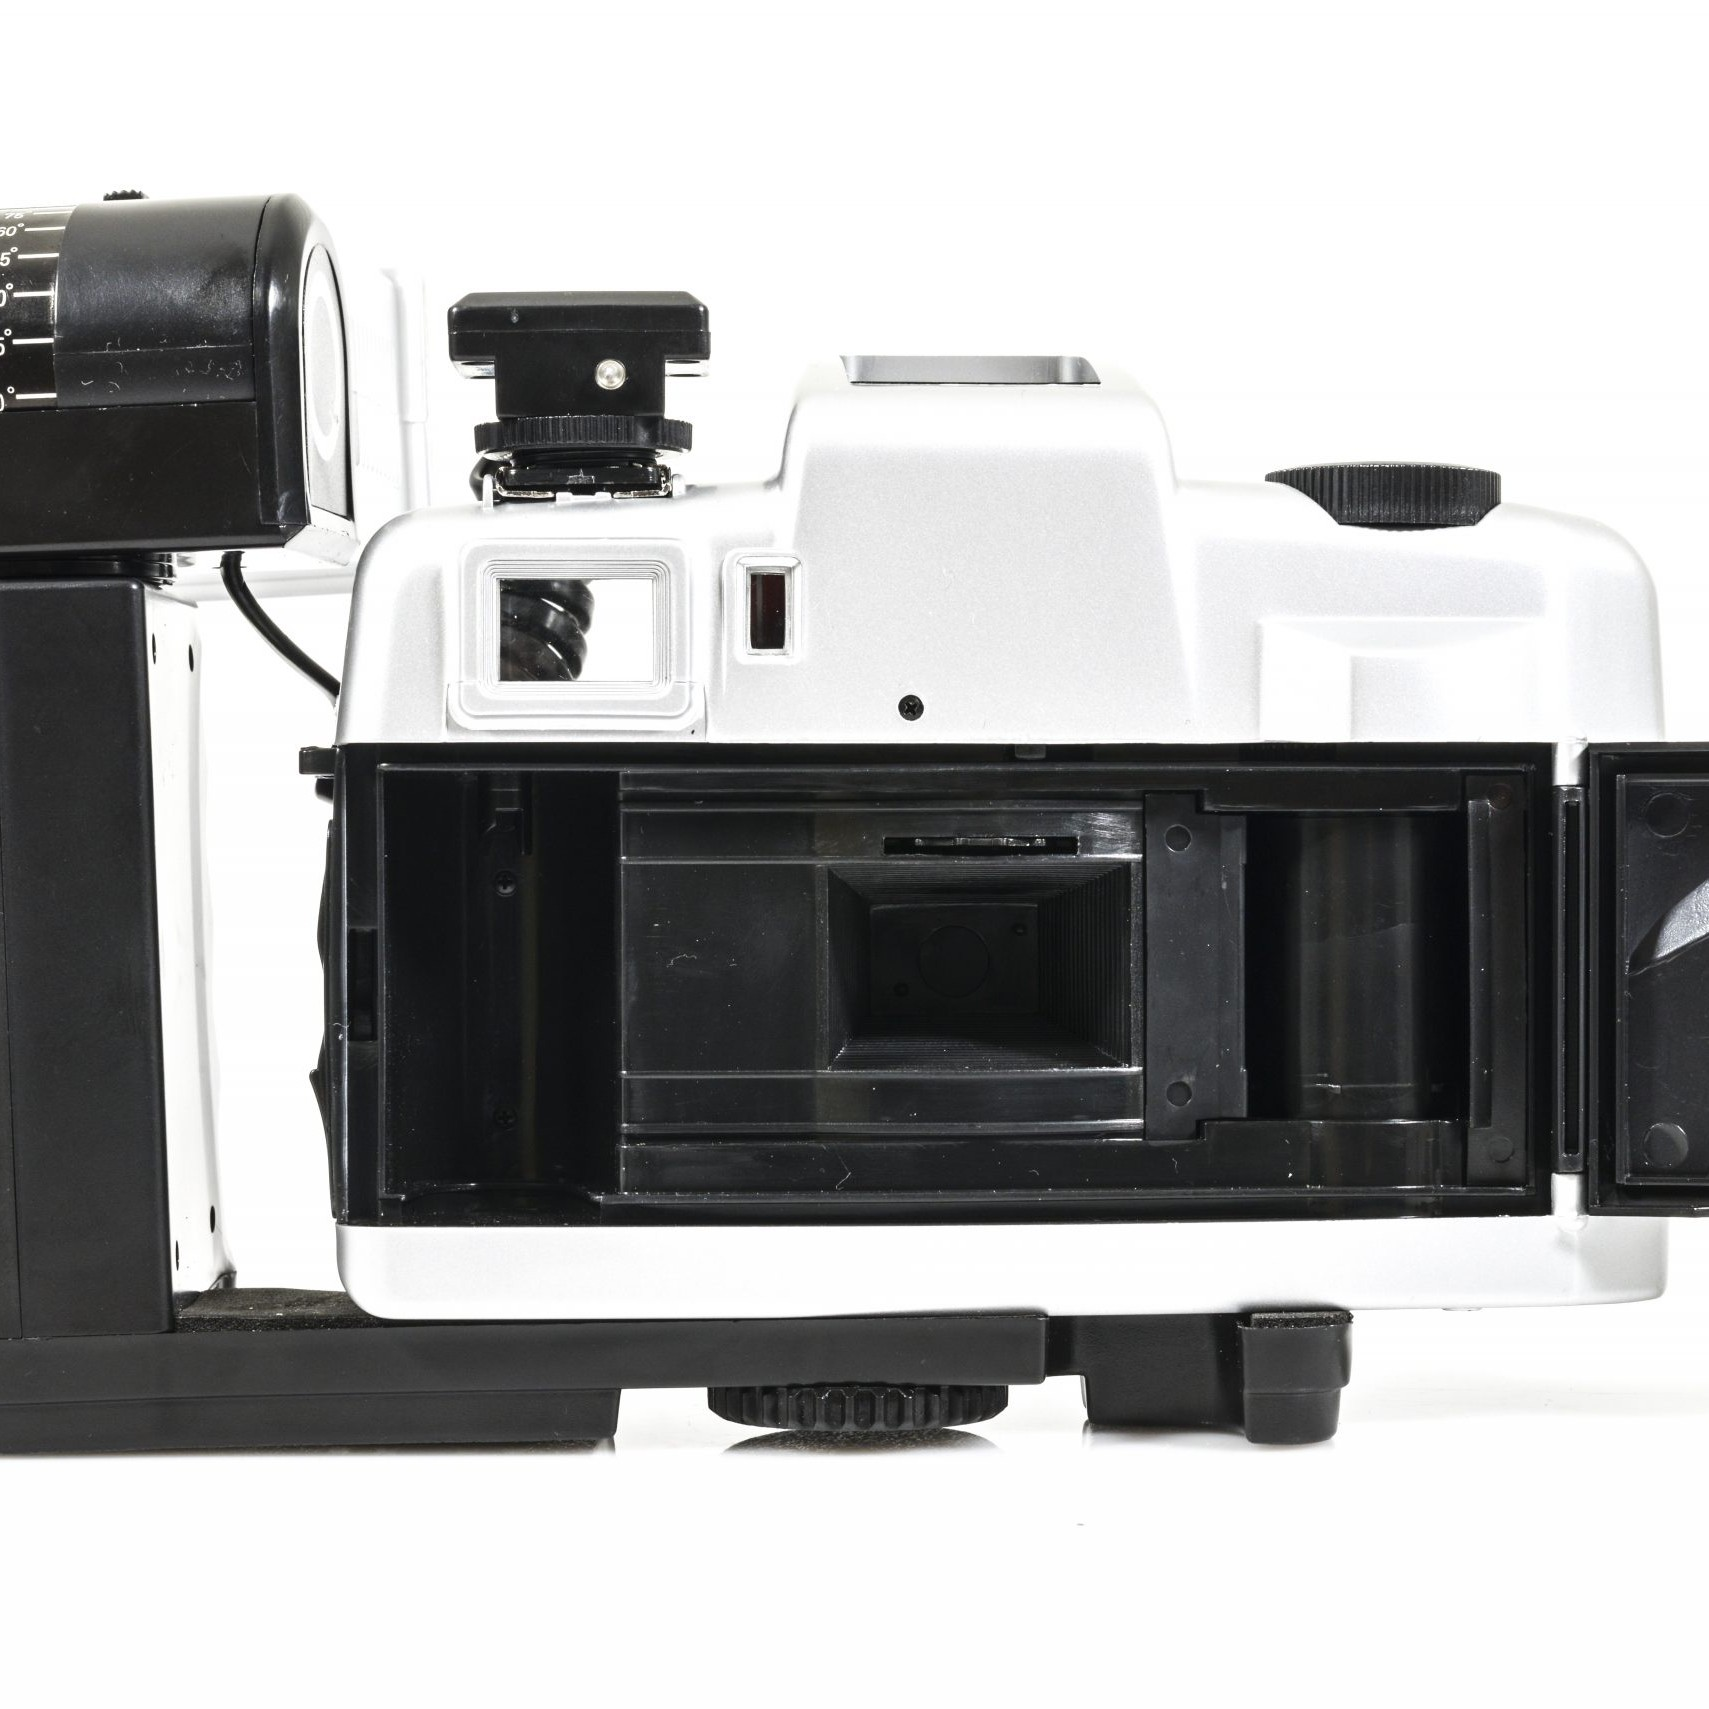 New Olympia DL2000A Point and Shoot 35mm Film Camera + Battery Grip and Flash and Bag